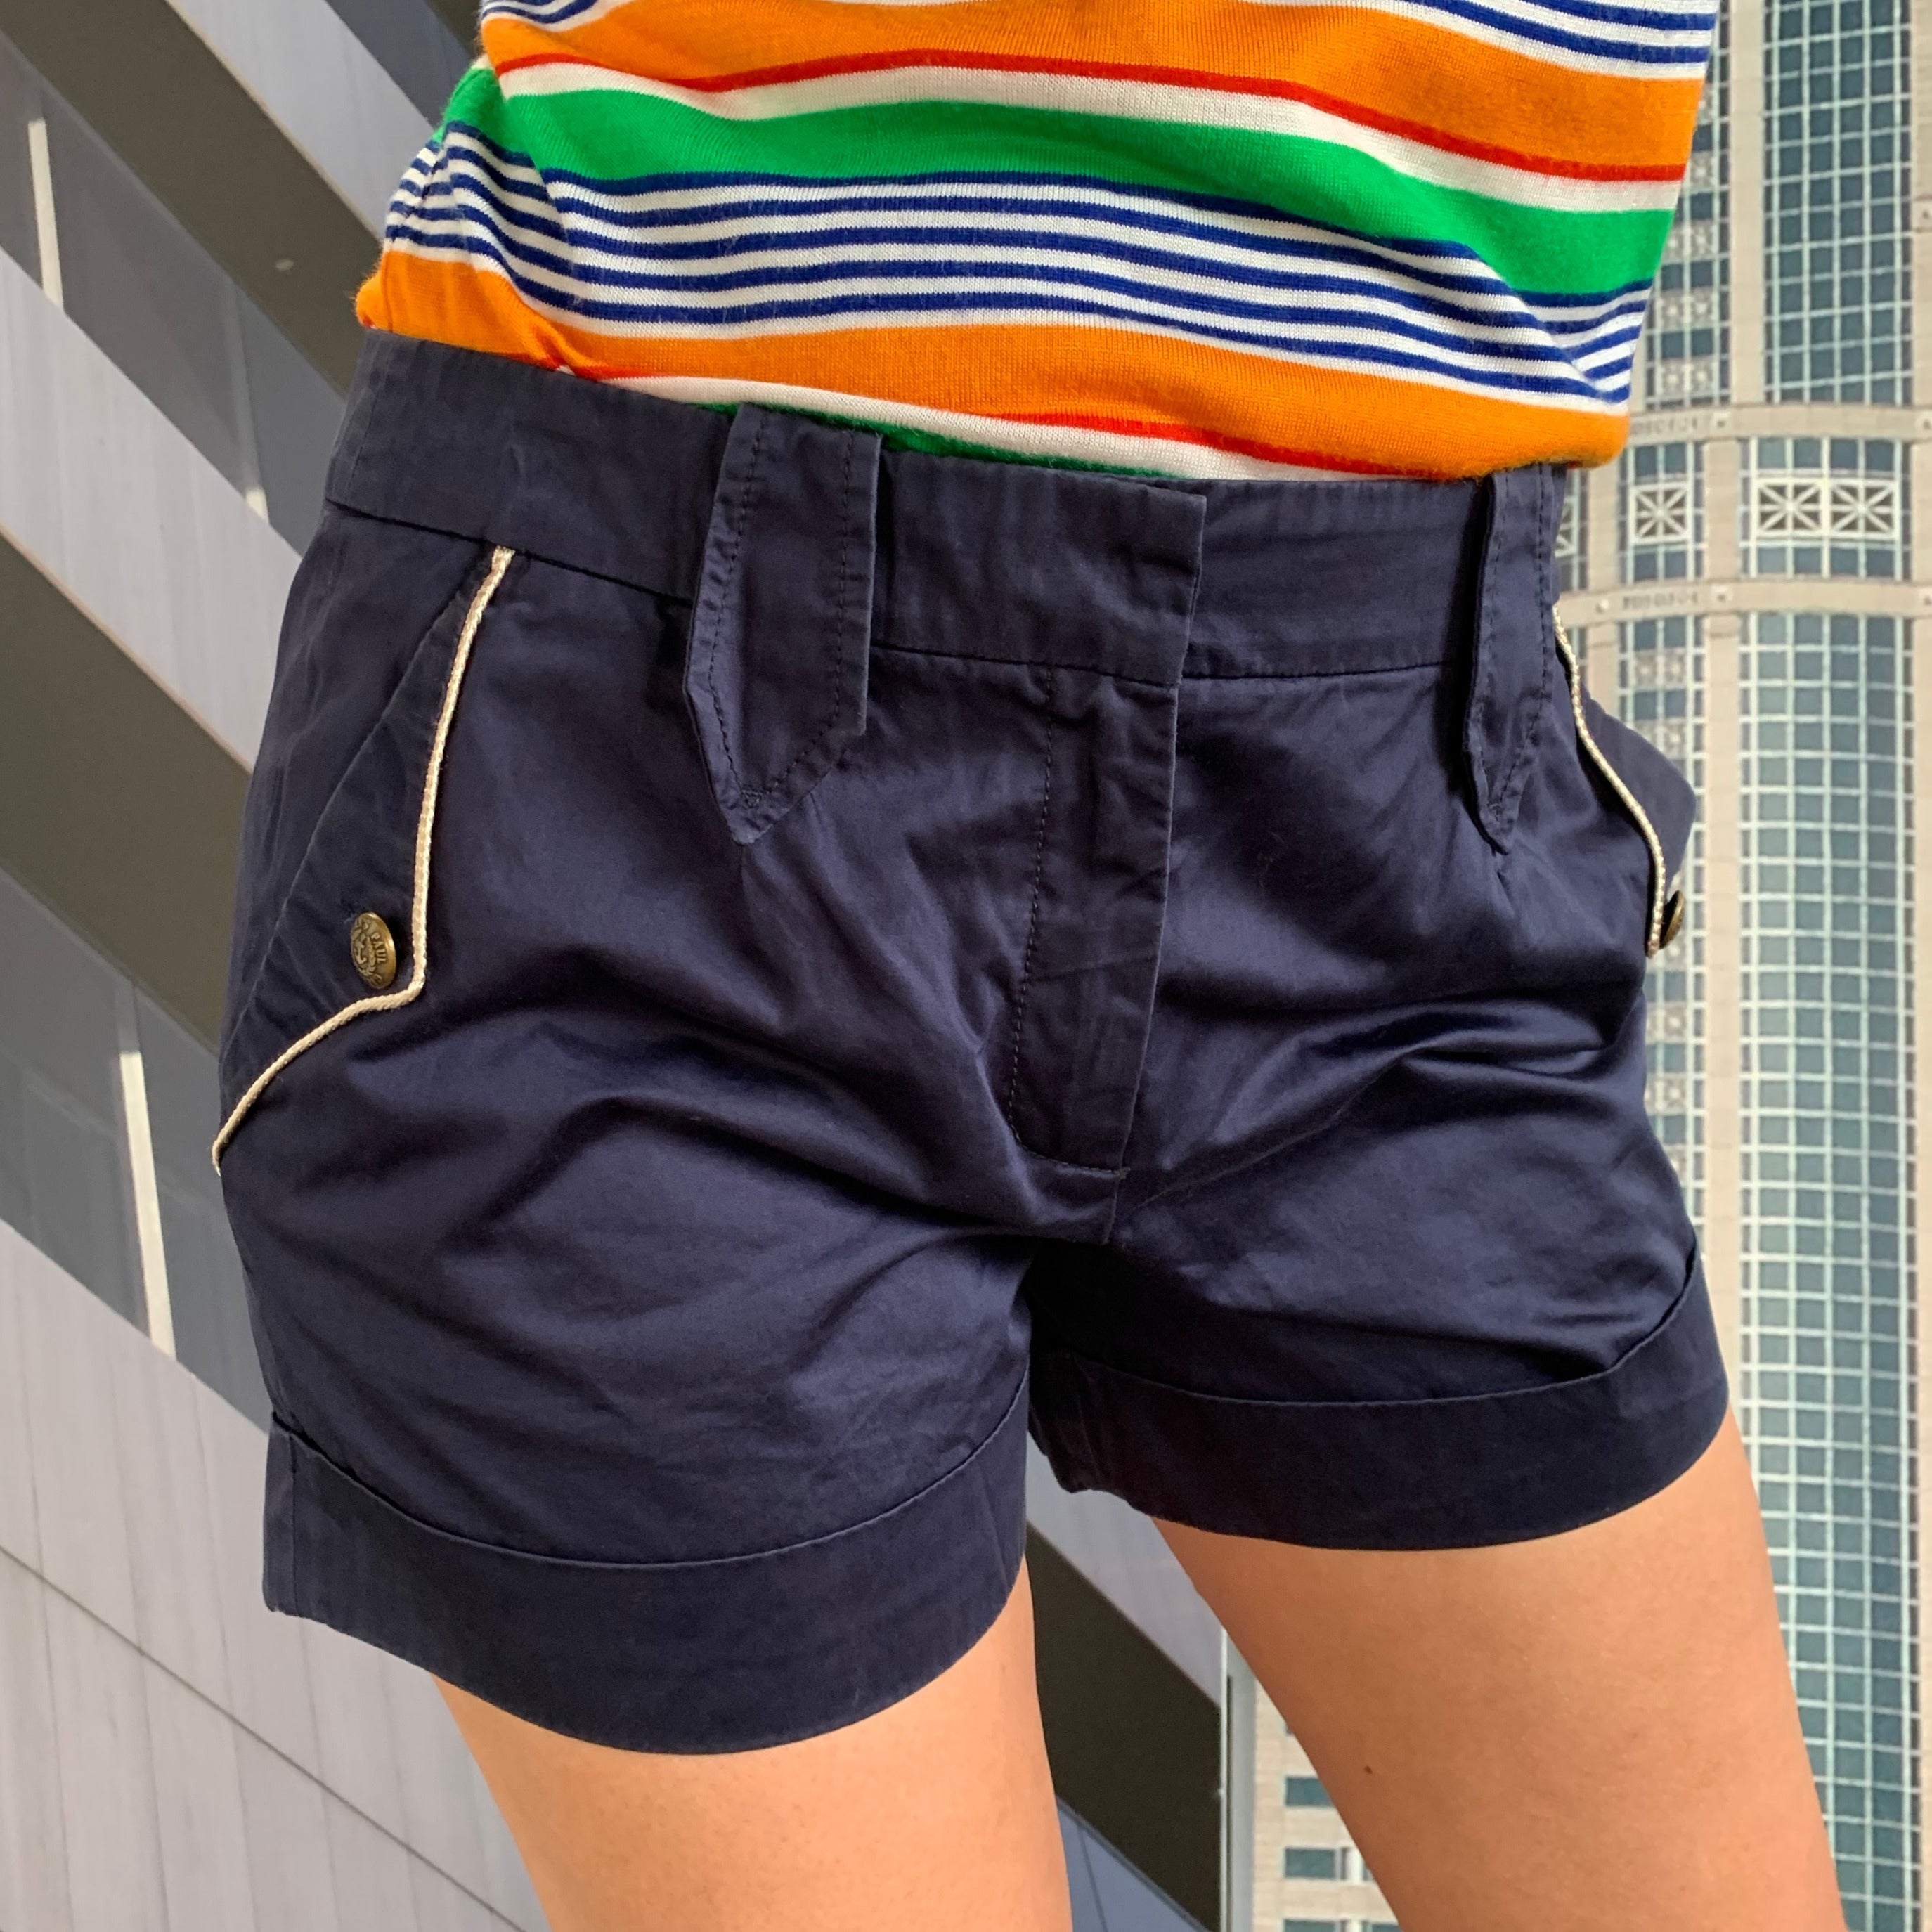 Jean Paul Gaultier Shorts